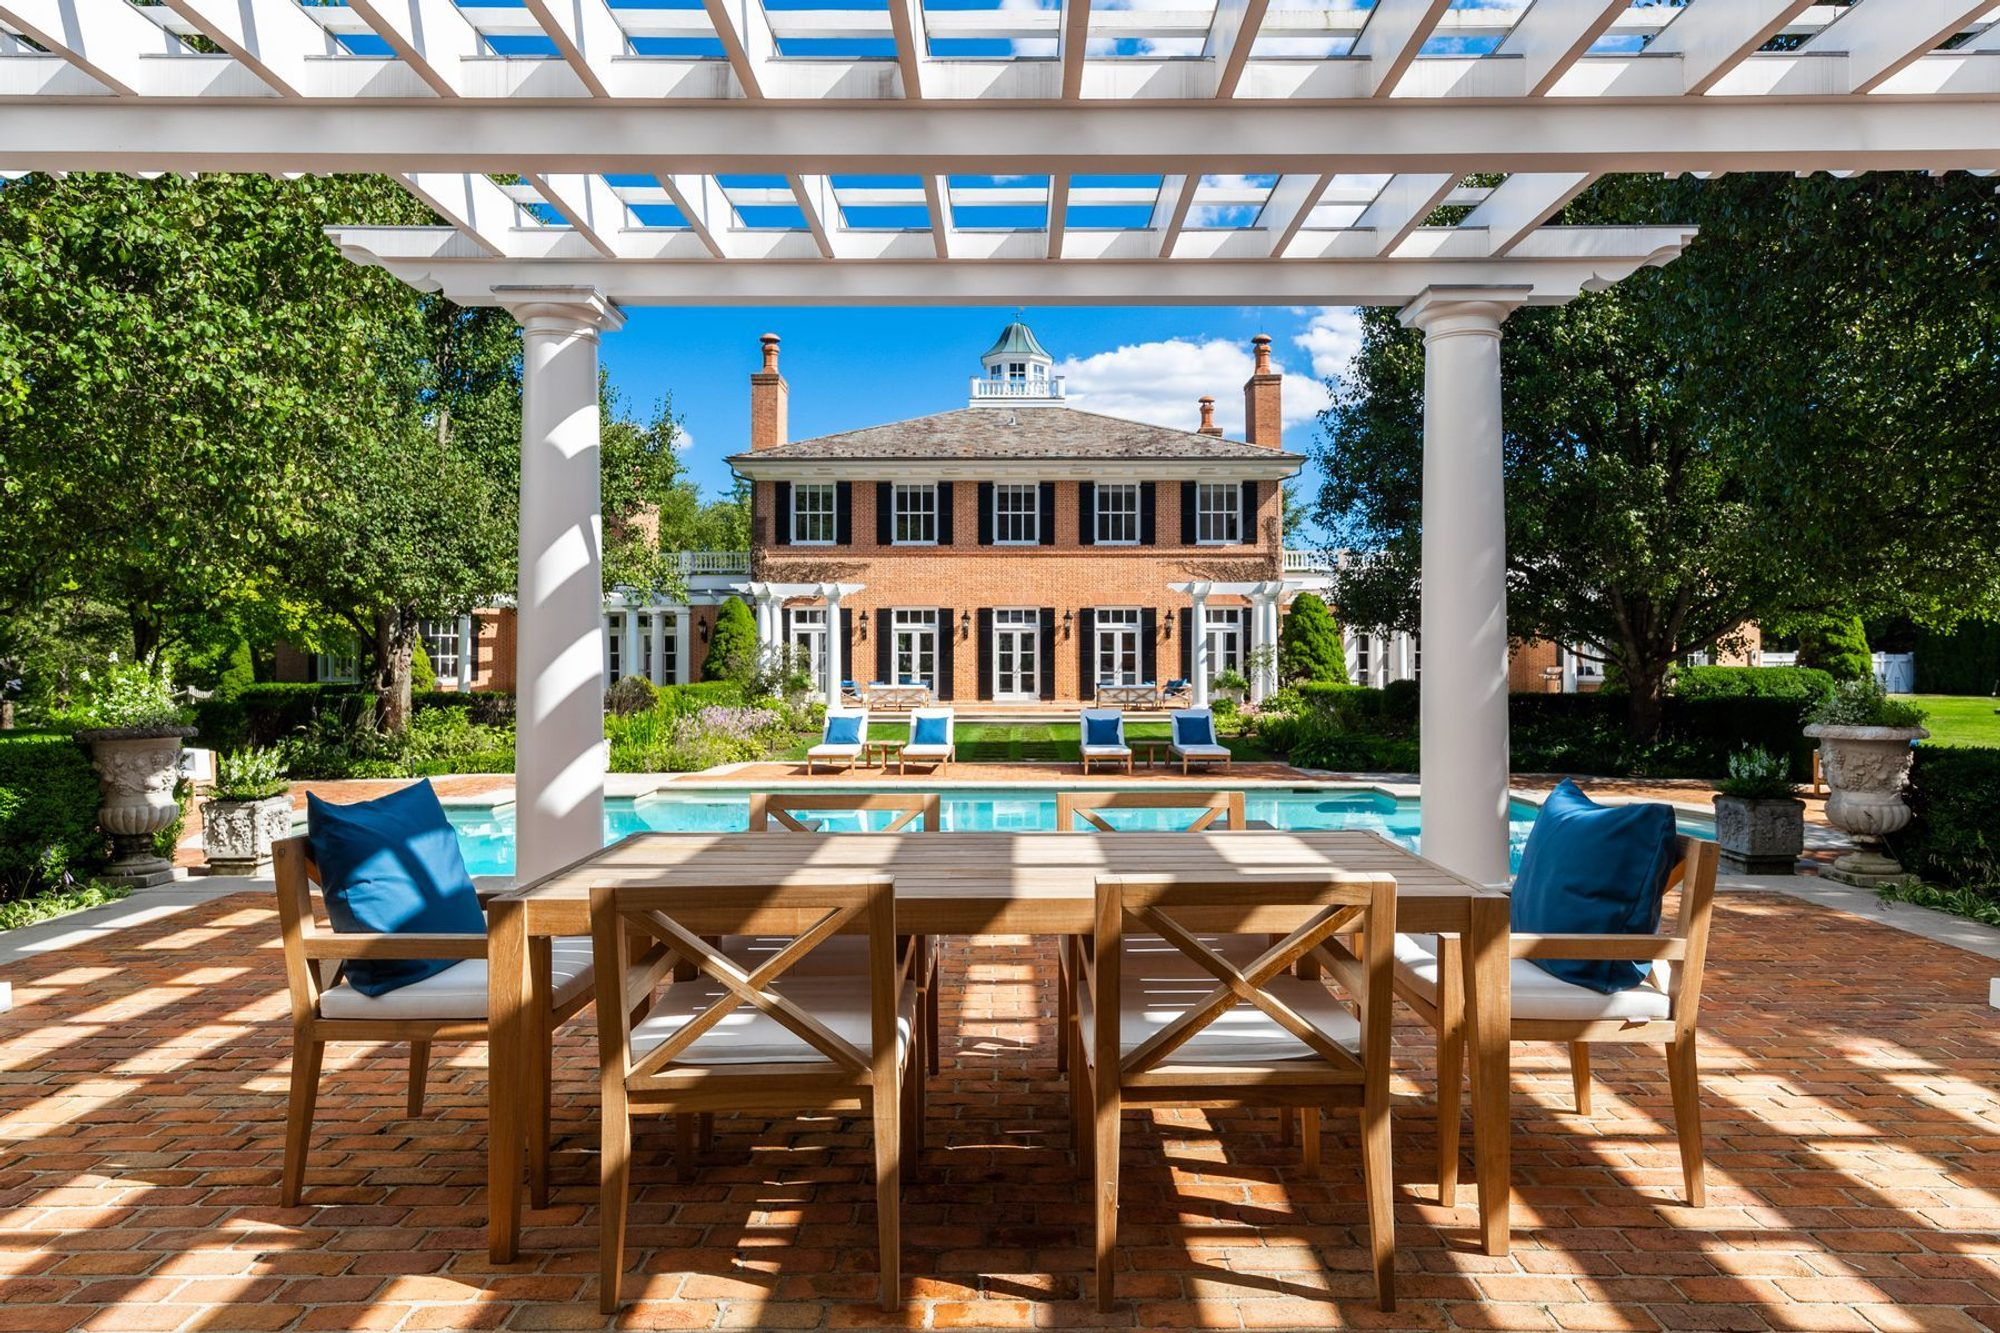 Red brick subway style poolside patio with a custom built white arbor. Wood outdoor furniture with table and six chairs. White cushions with blue pillows.